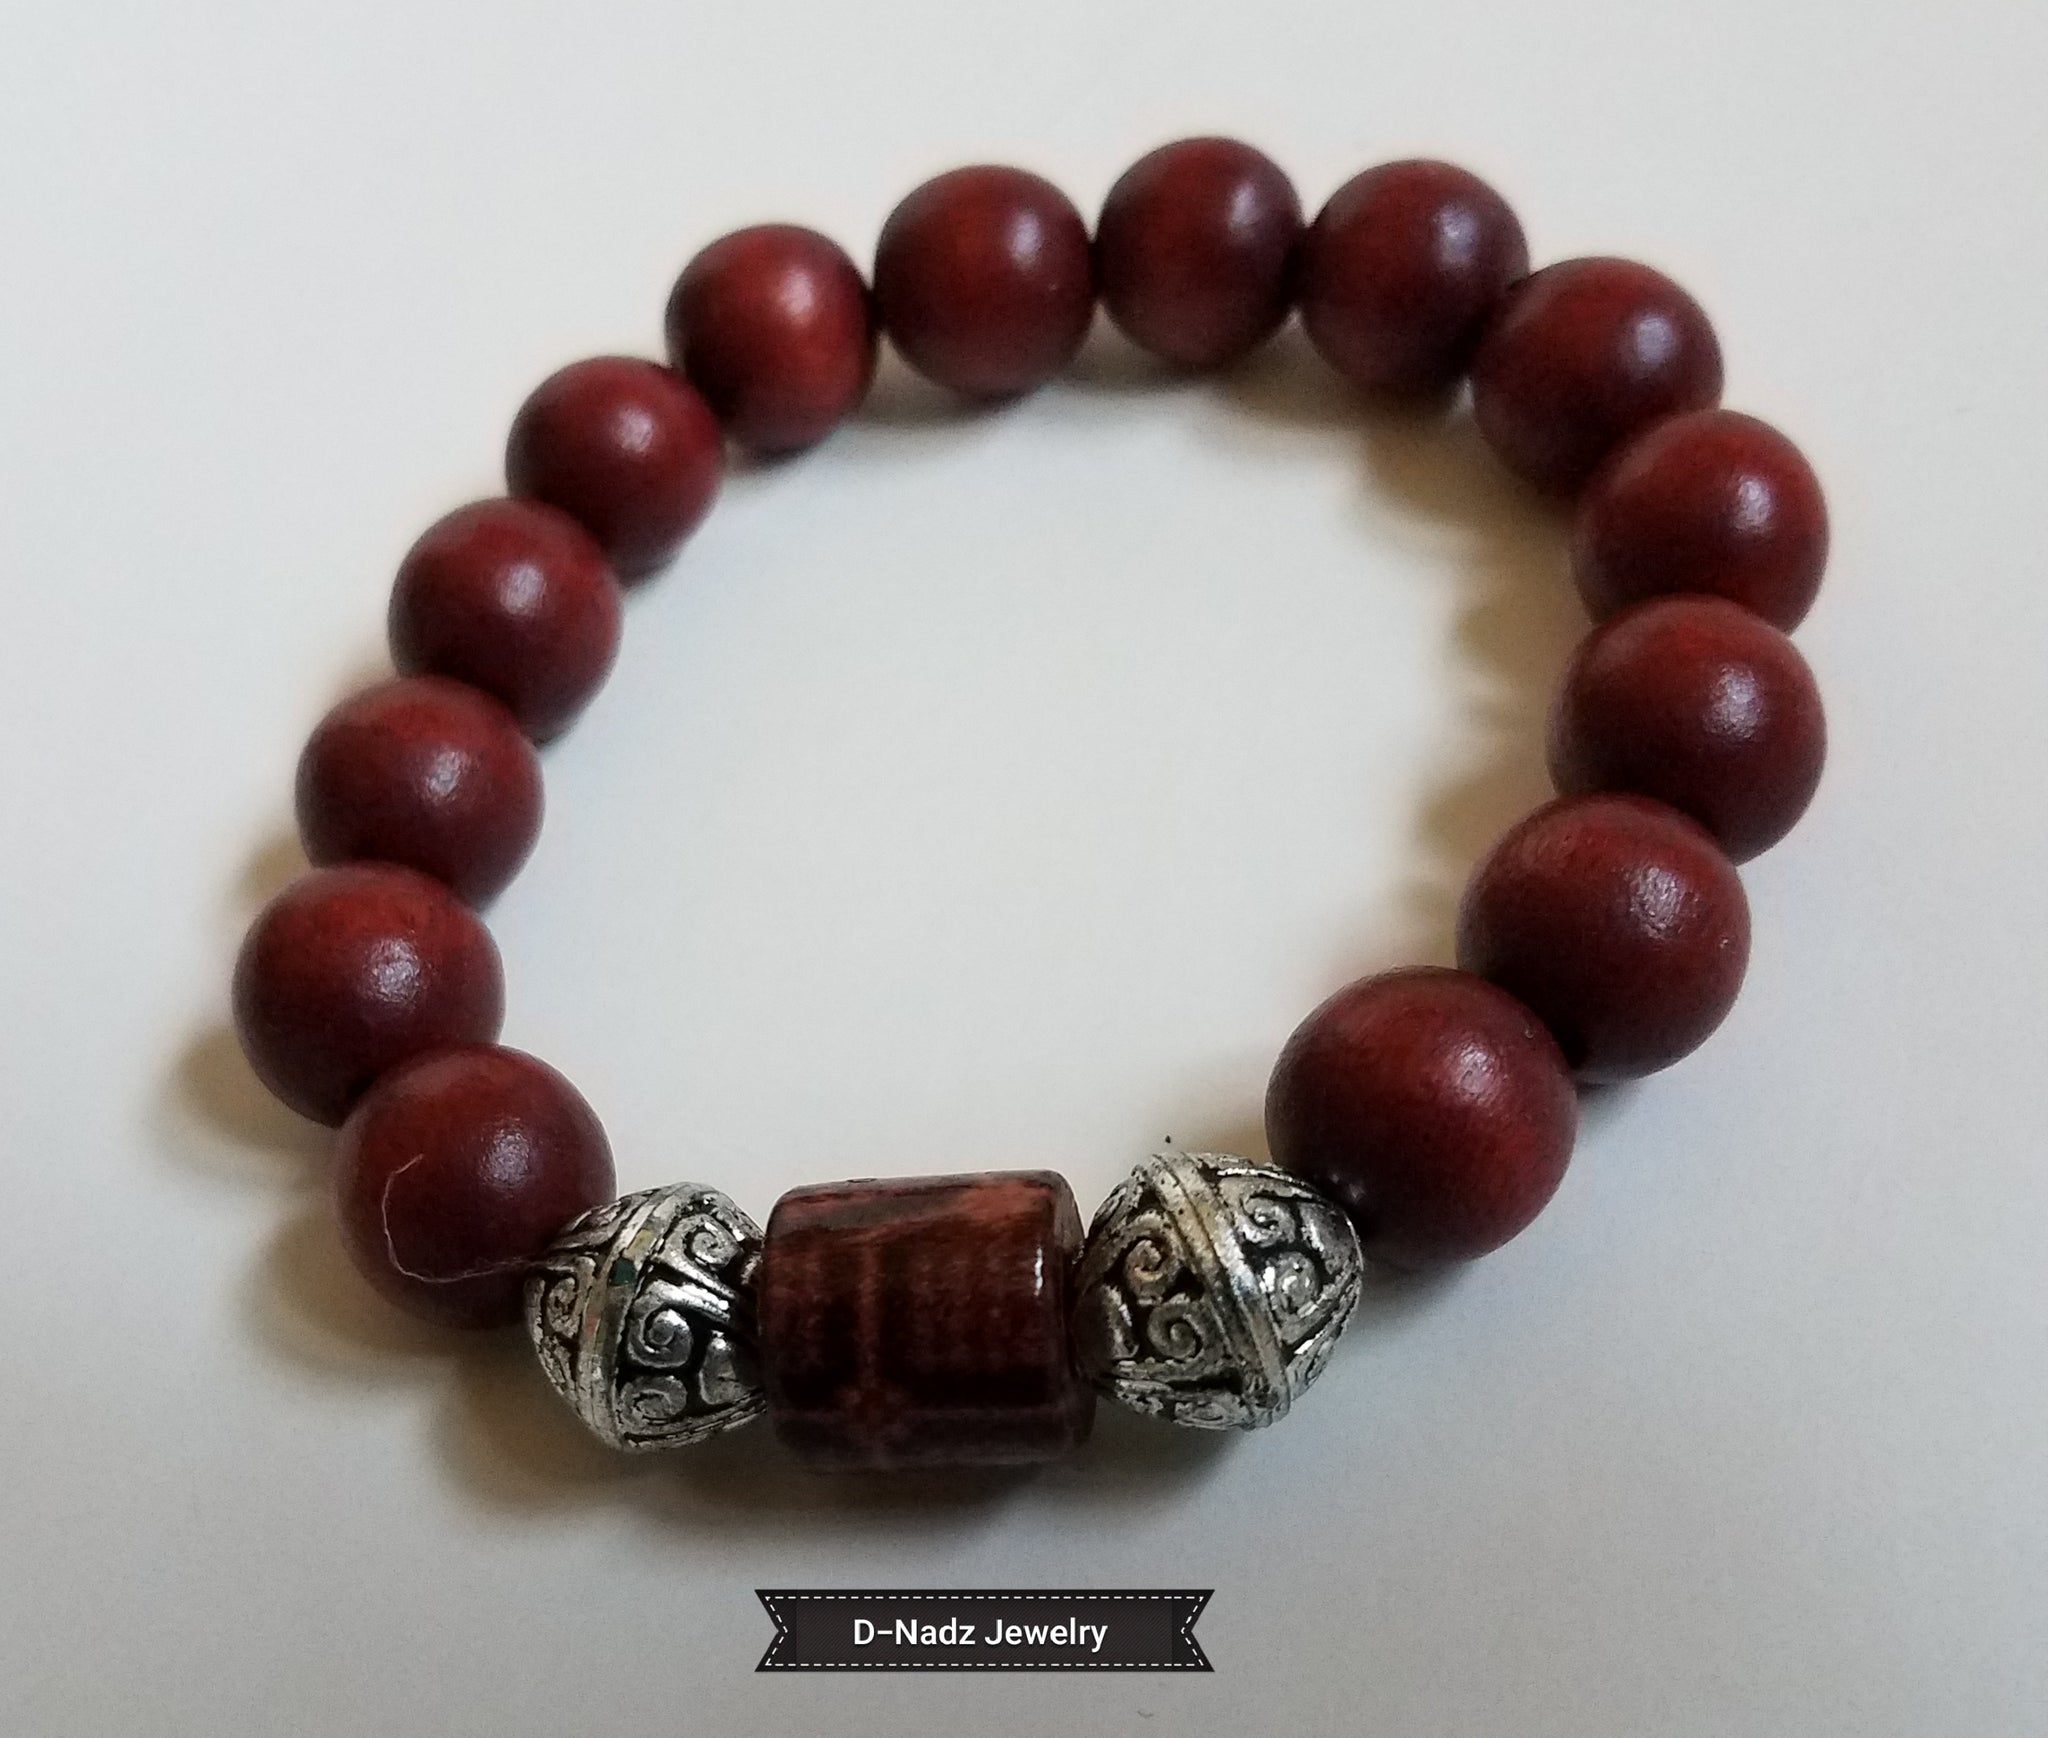 Cool Brown Metal - D-Nadz Jewelry